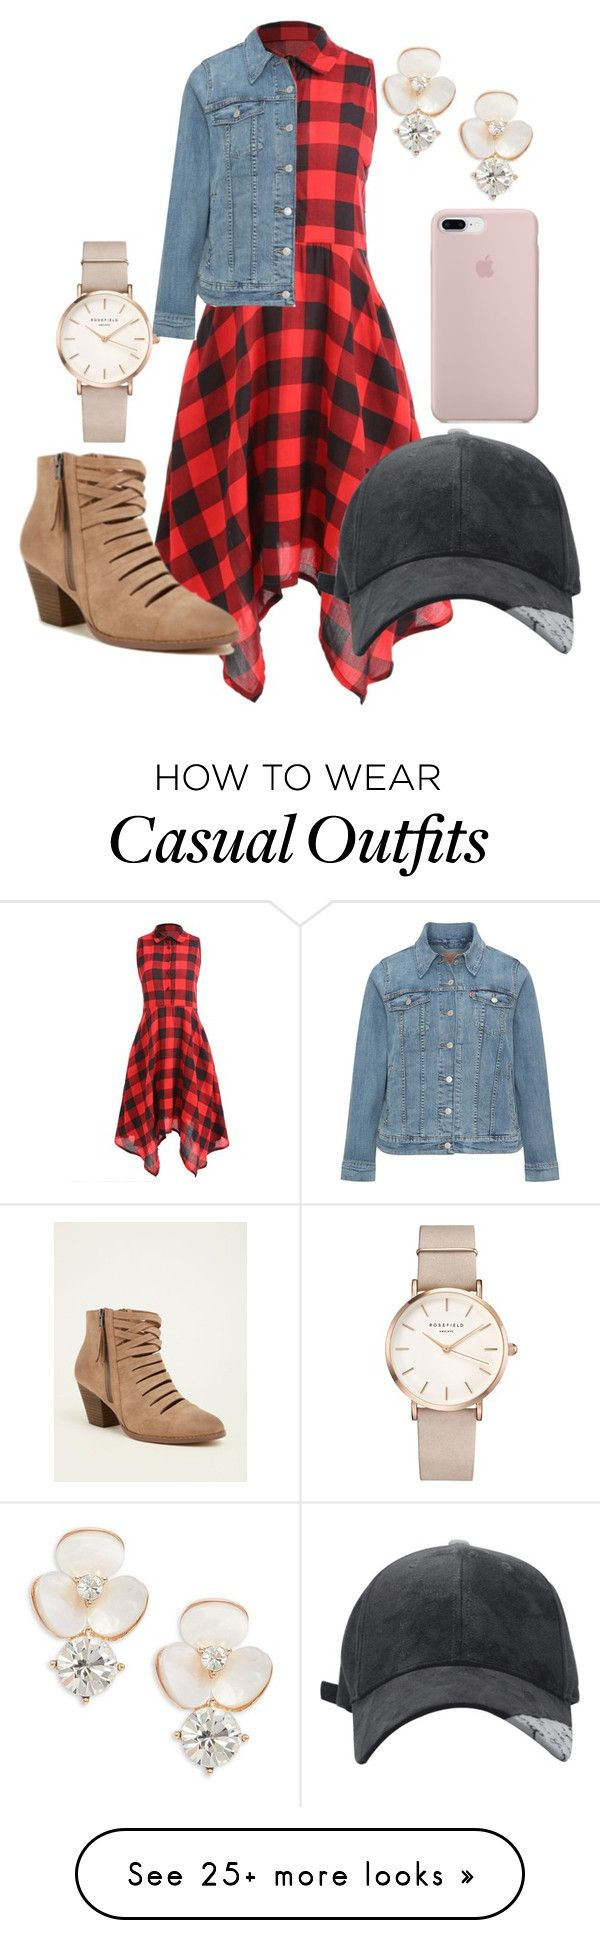 """""""Casual Times"""" by lmorin-1 on Polyvore featuring Levi's, Torrid, ROSEFIELD and Kate Spade"""